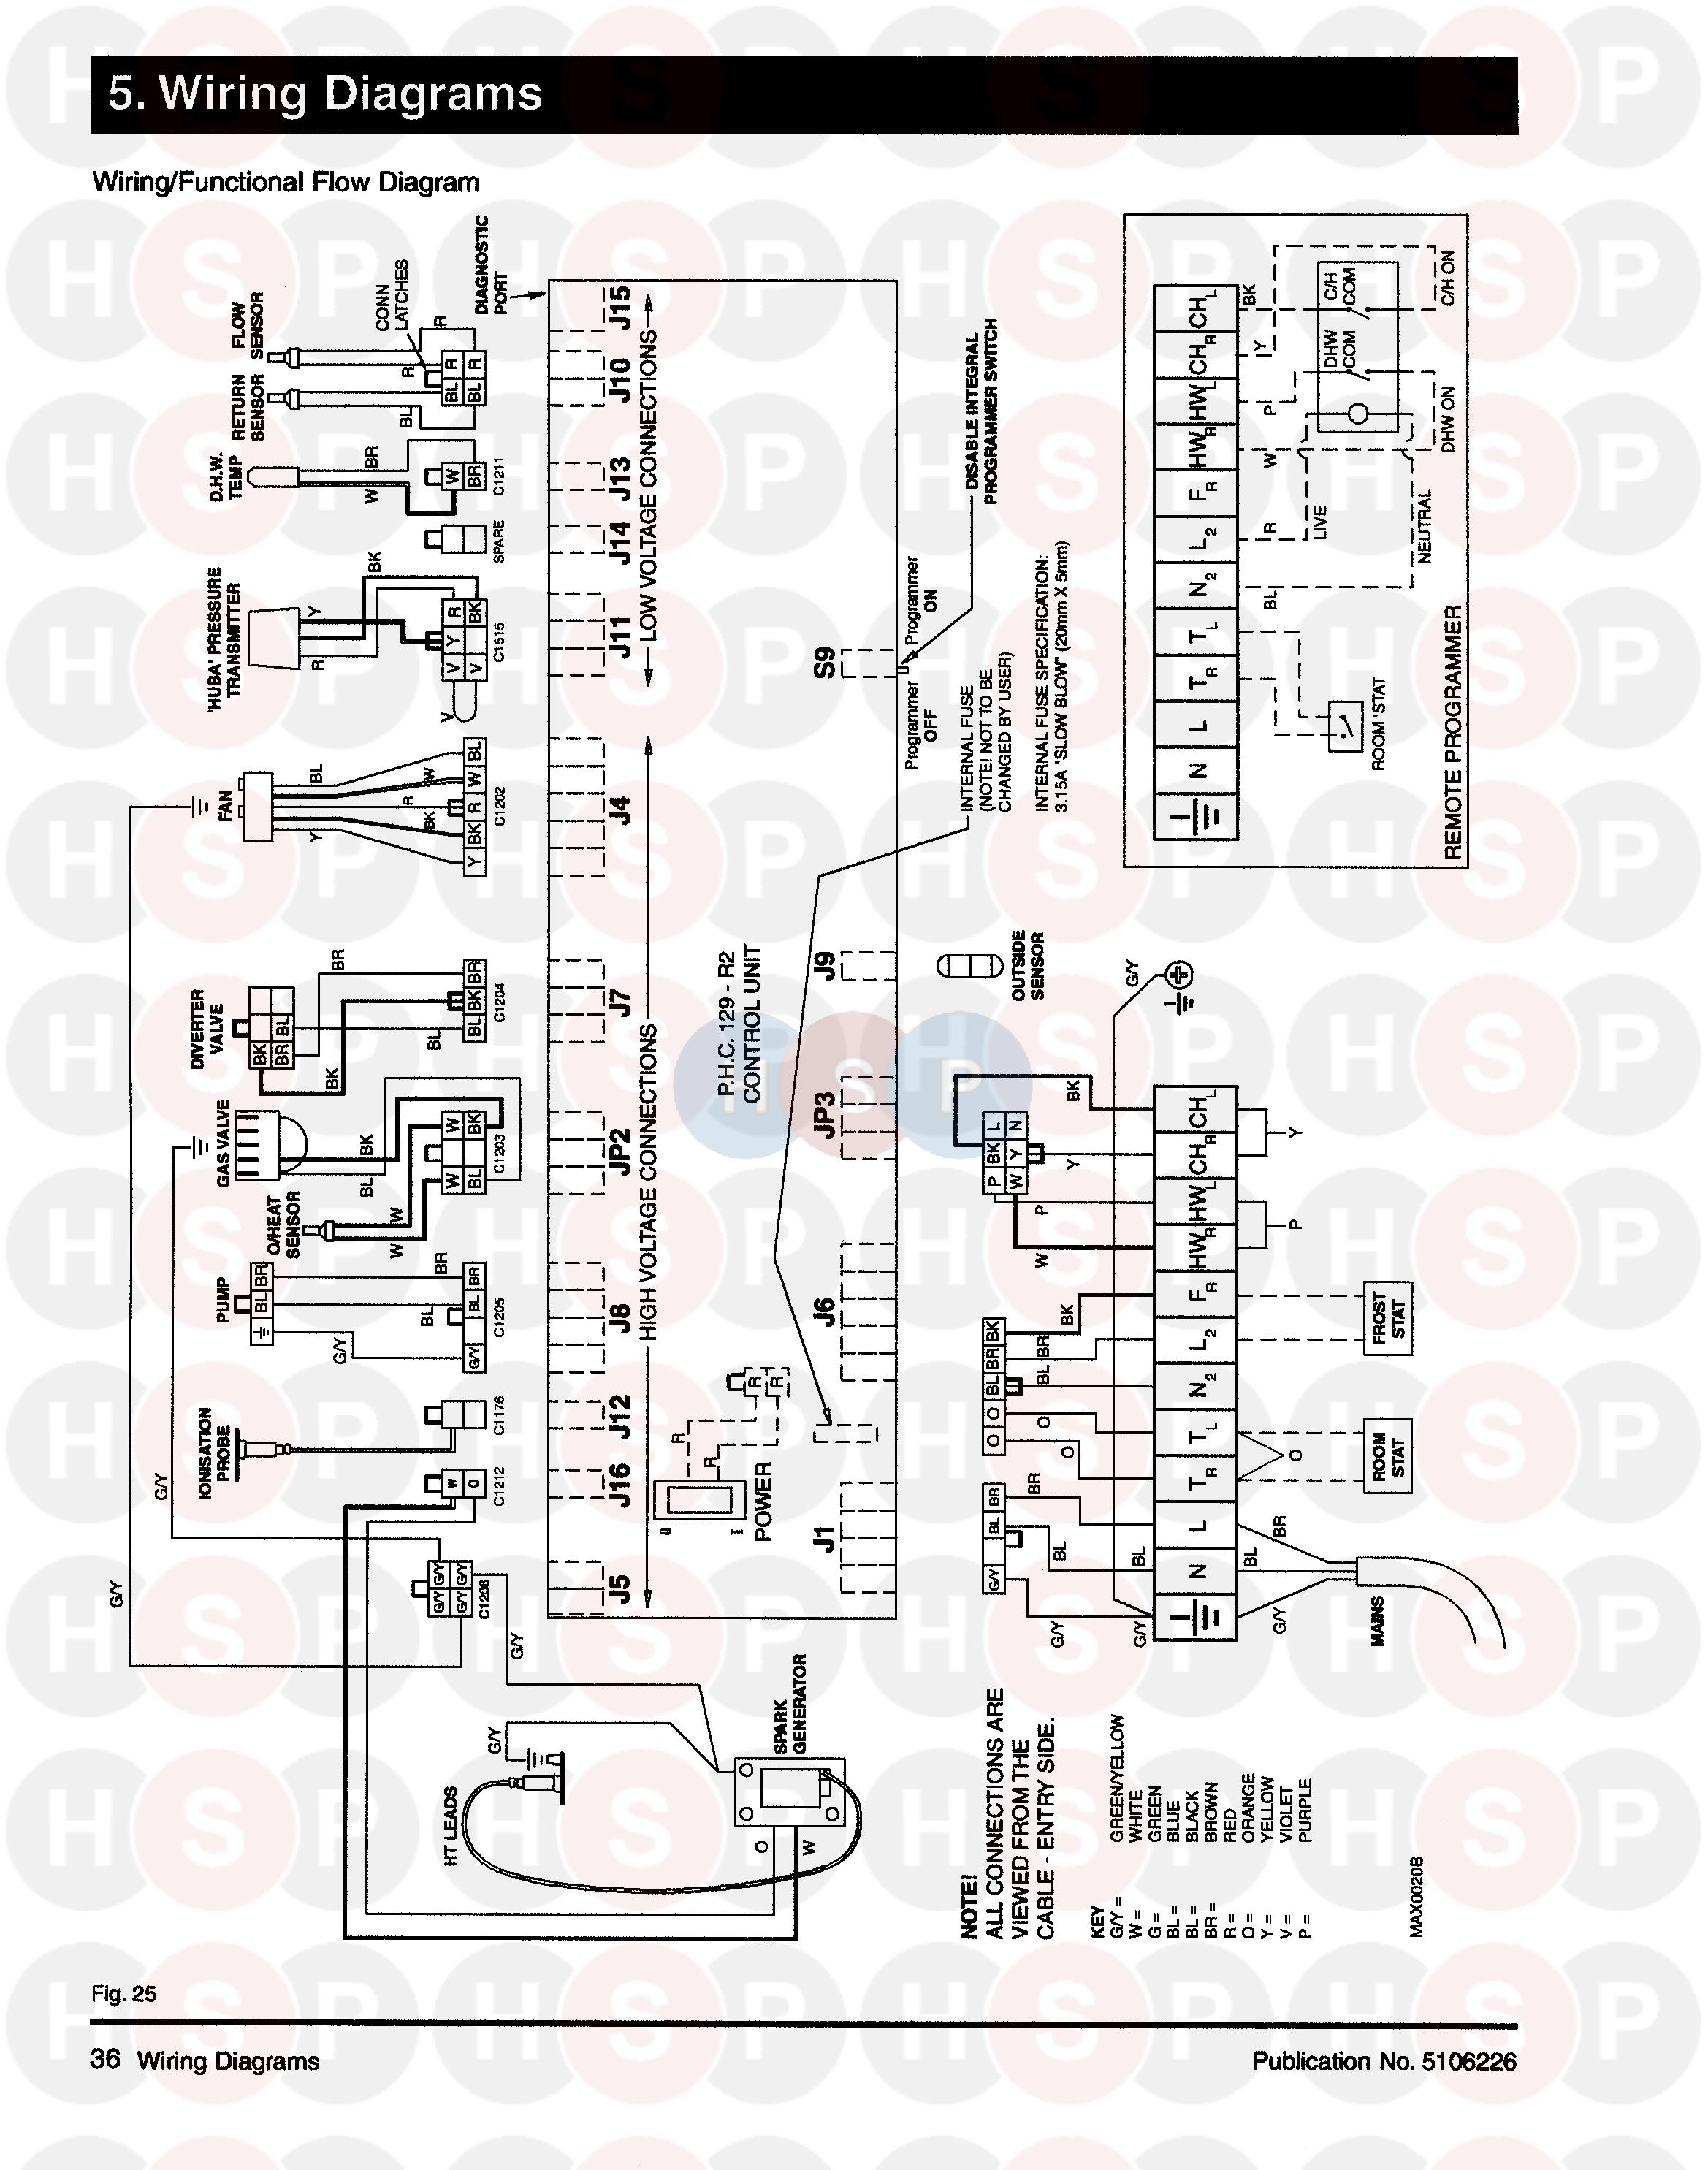 Potterton POWERMAX 85 HE (Wiring Diagram 1) Diagram